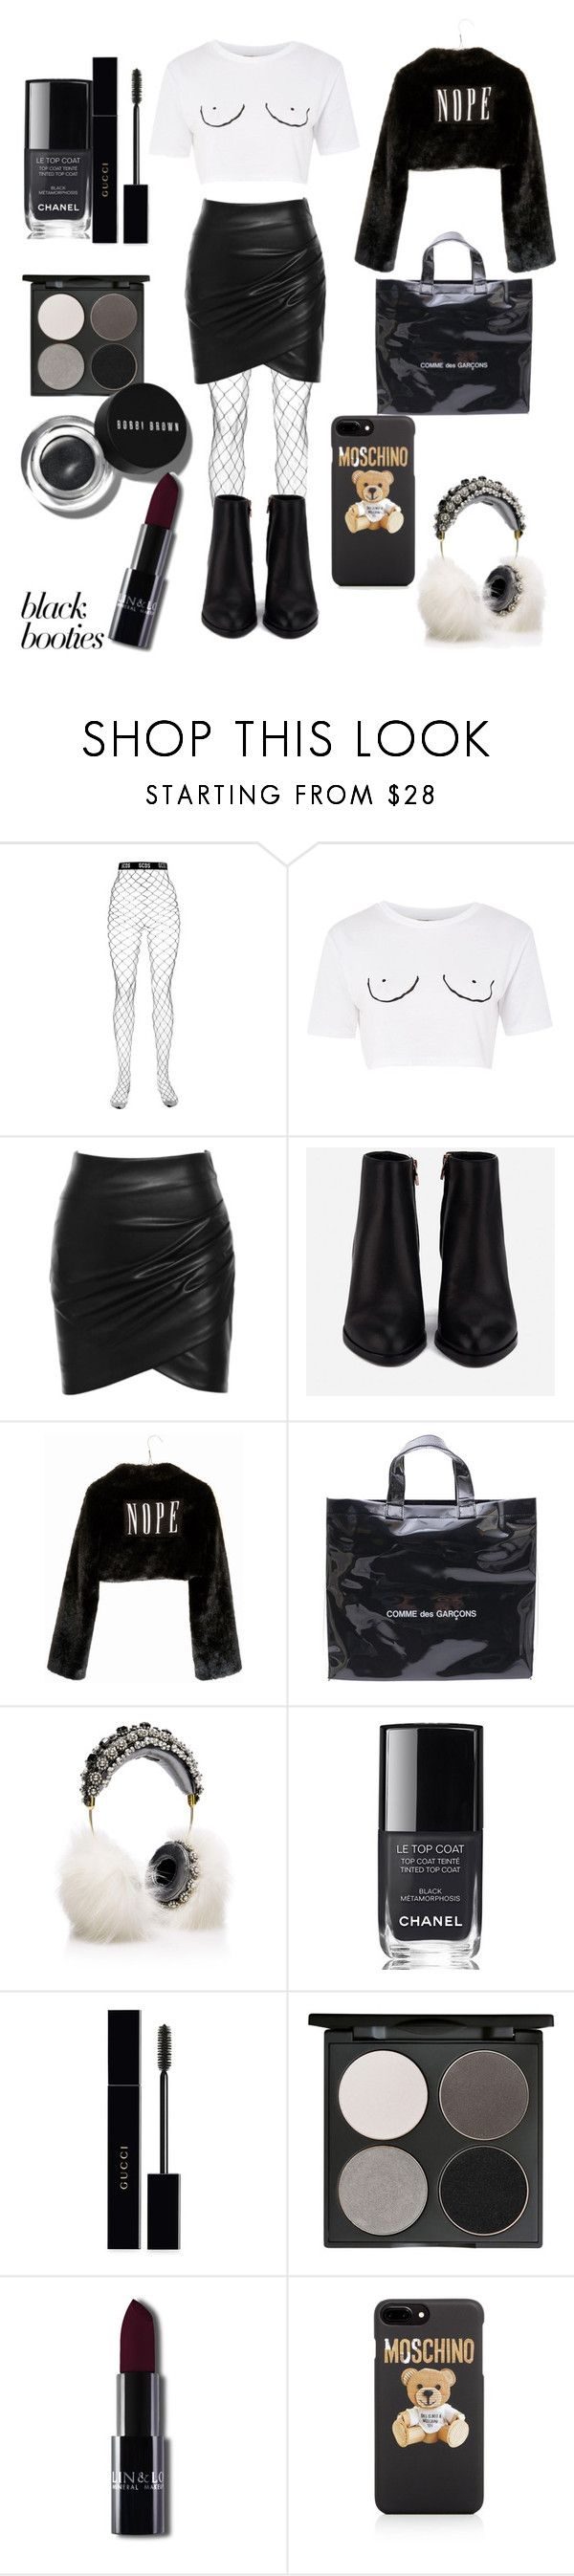 """Untitled #56"" by sudehur ❤ liked on Polyvore featuring GCDS, Topshop, Alexander Wang, Wet Seal, Comme des Garçons, Dolce&Gabbana, Chanel, Gucci, Gorgeous Cosmetics and Bobbi Brown Cosmetics"